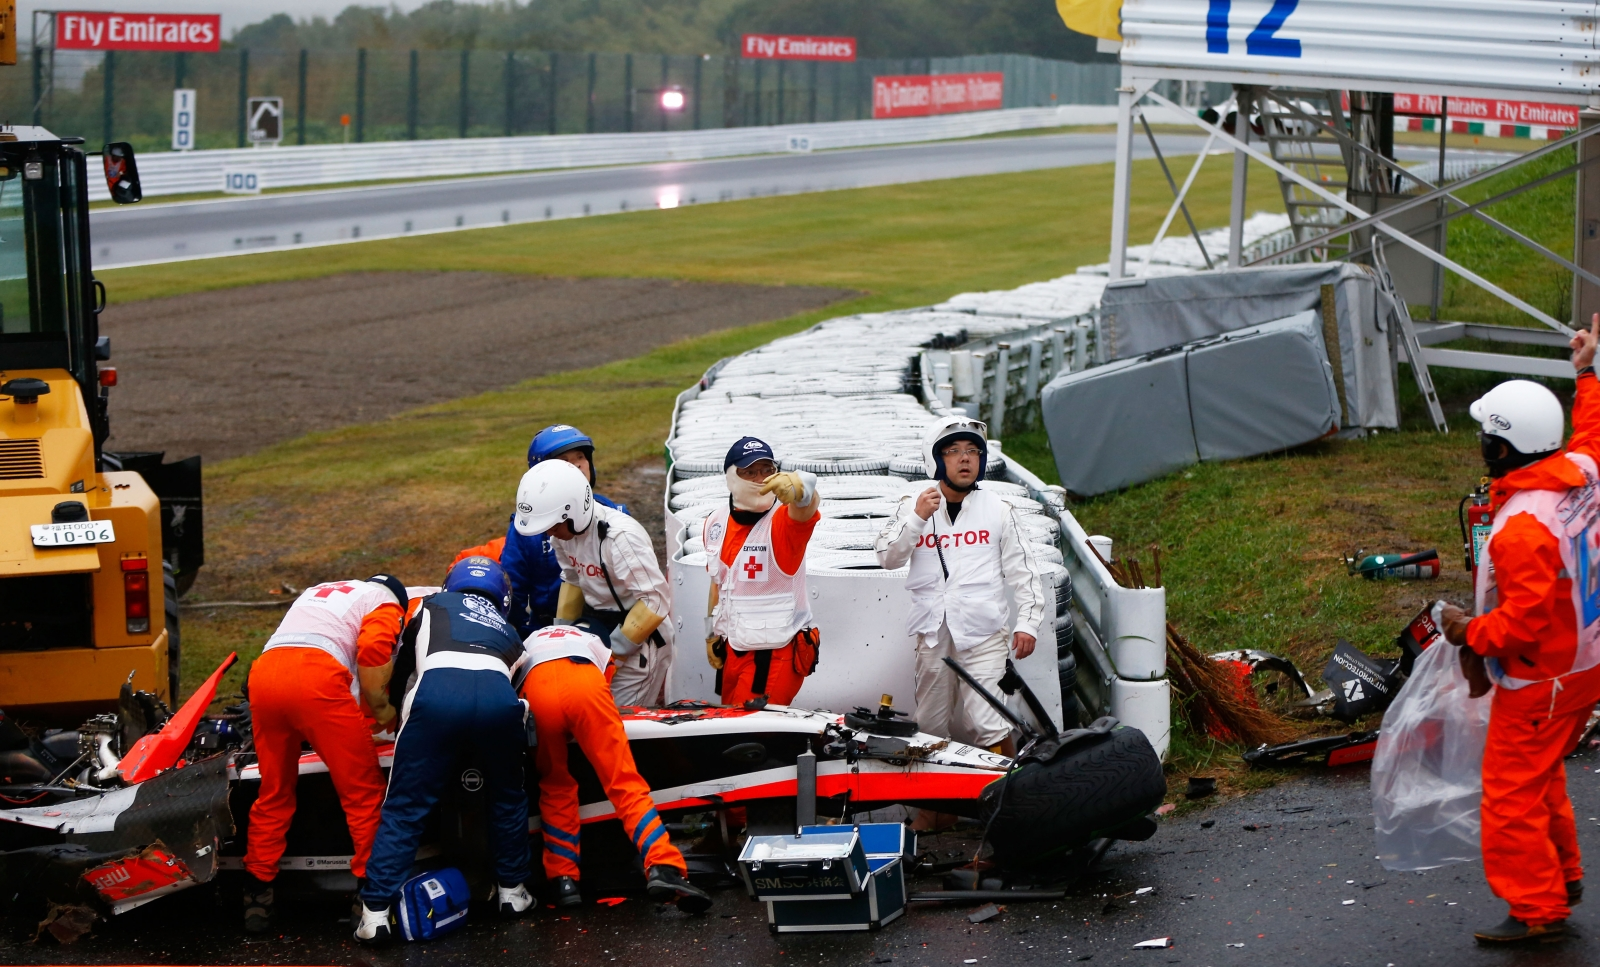 Marussia shocked by